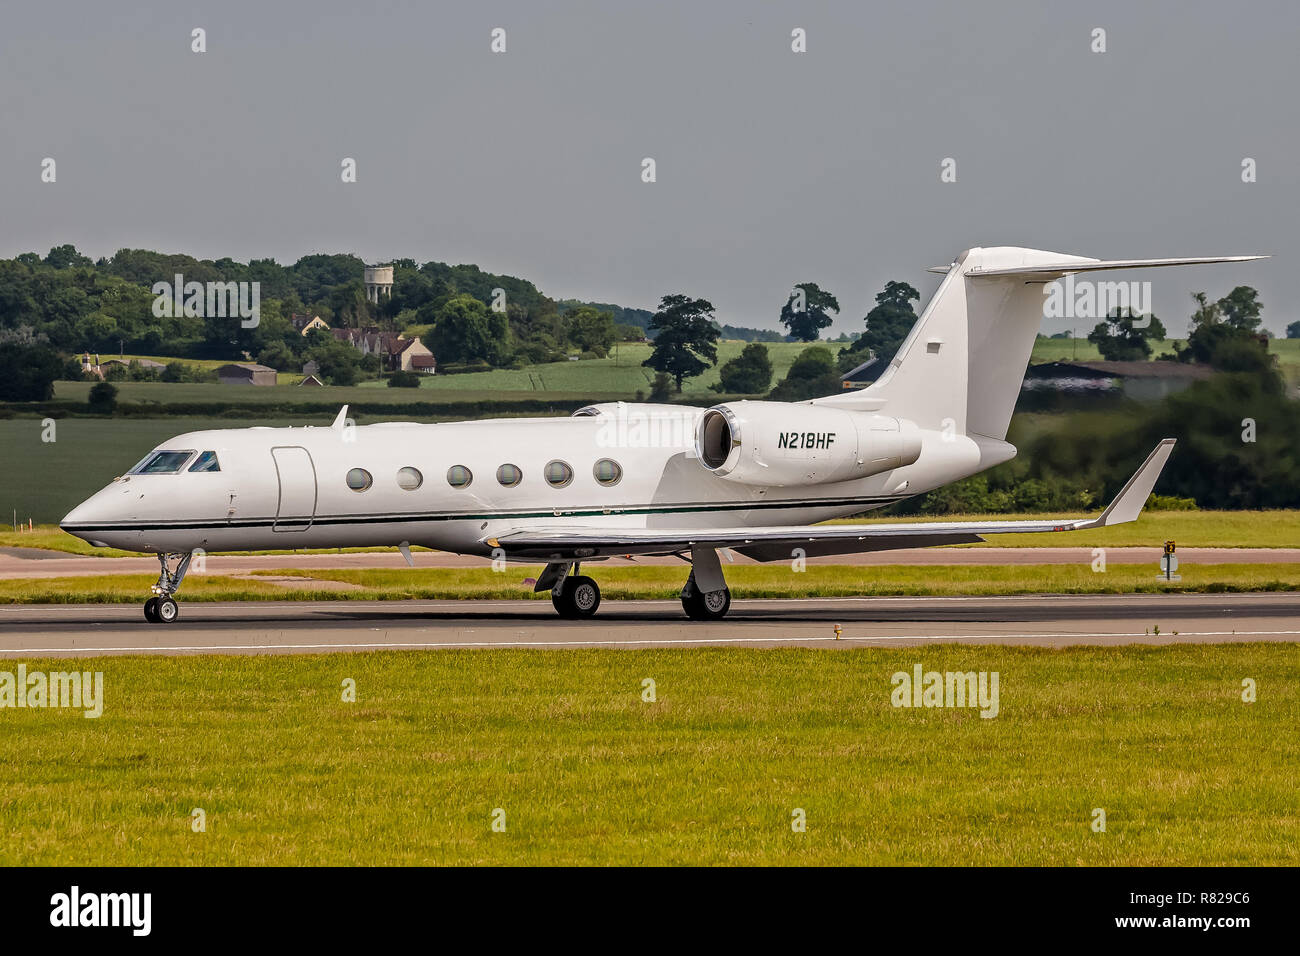 A Gulfstream Aerospace Gulfstream 4 (G450) executive business jet, registration N218HF, at London Luton Airport in England. - Stock Image